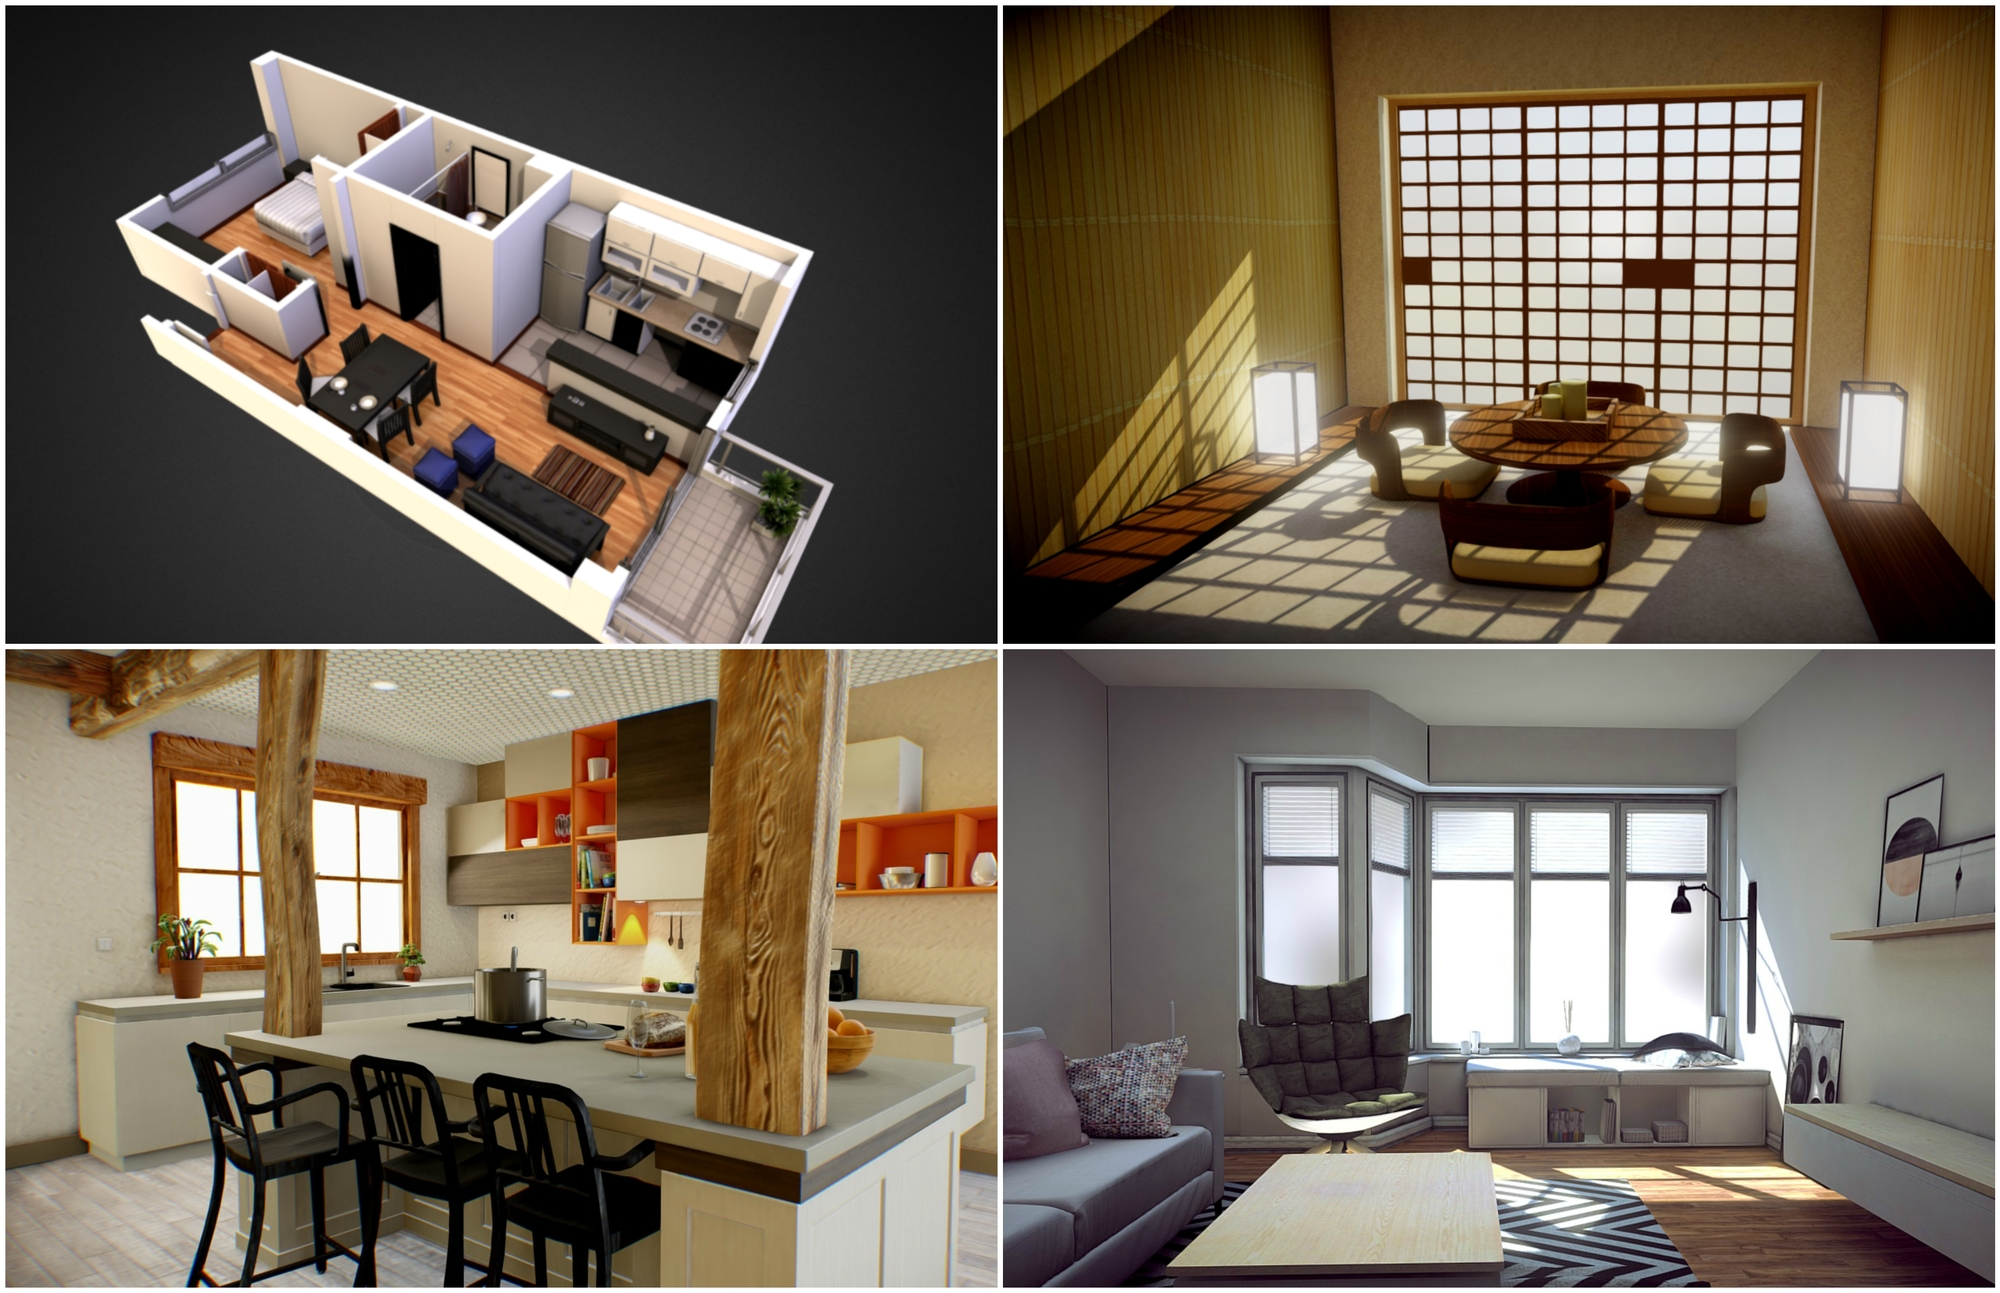 7 Examples Of Show Interiors In 3d Models